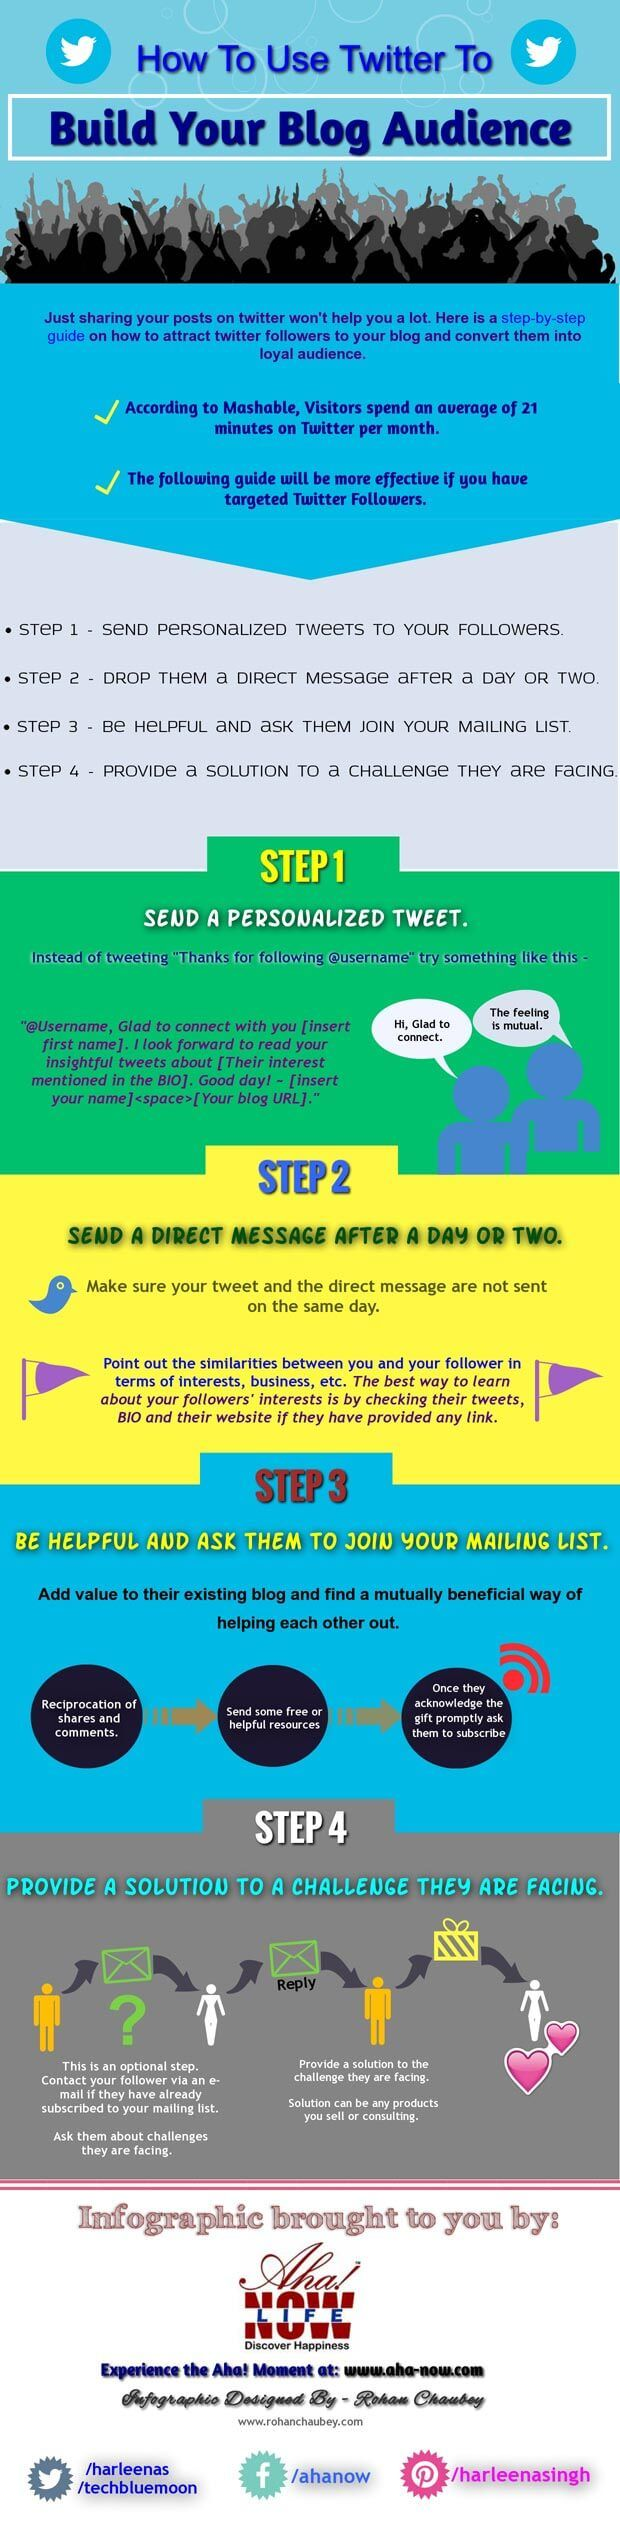 Infographic on using Twitter to build a blog audience